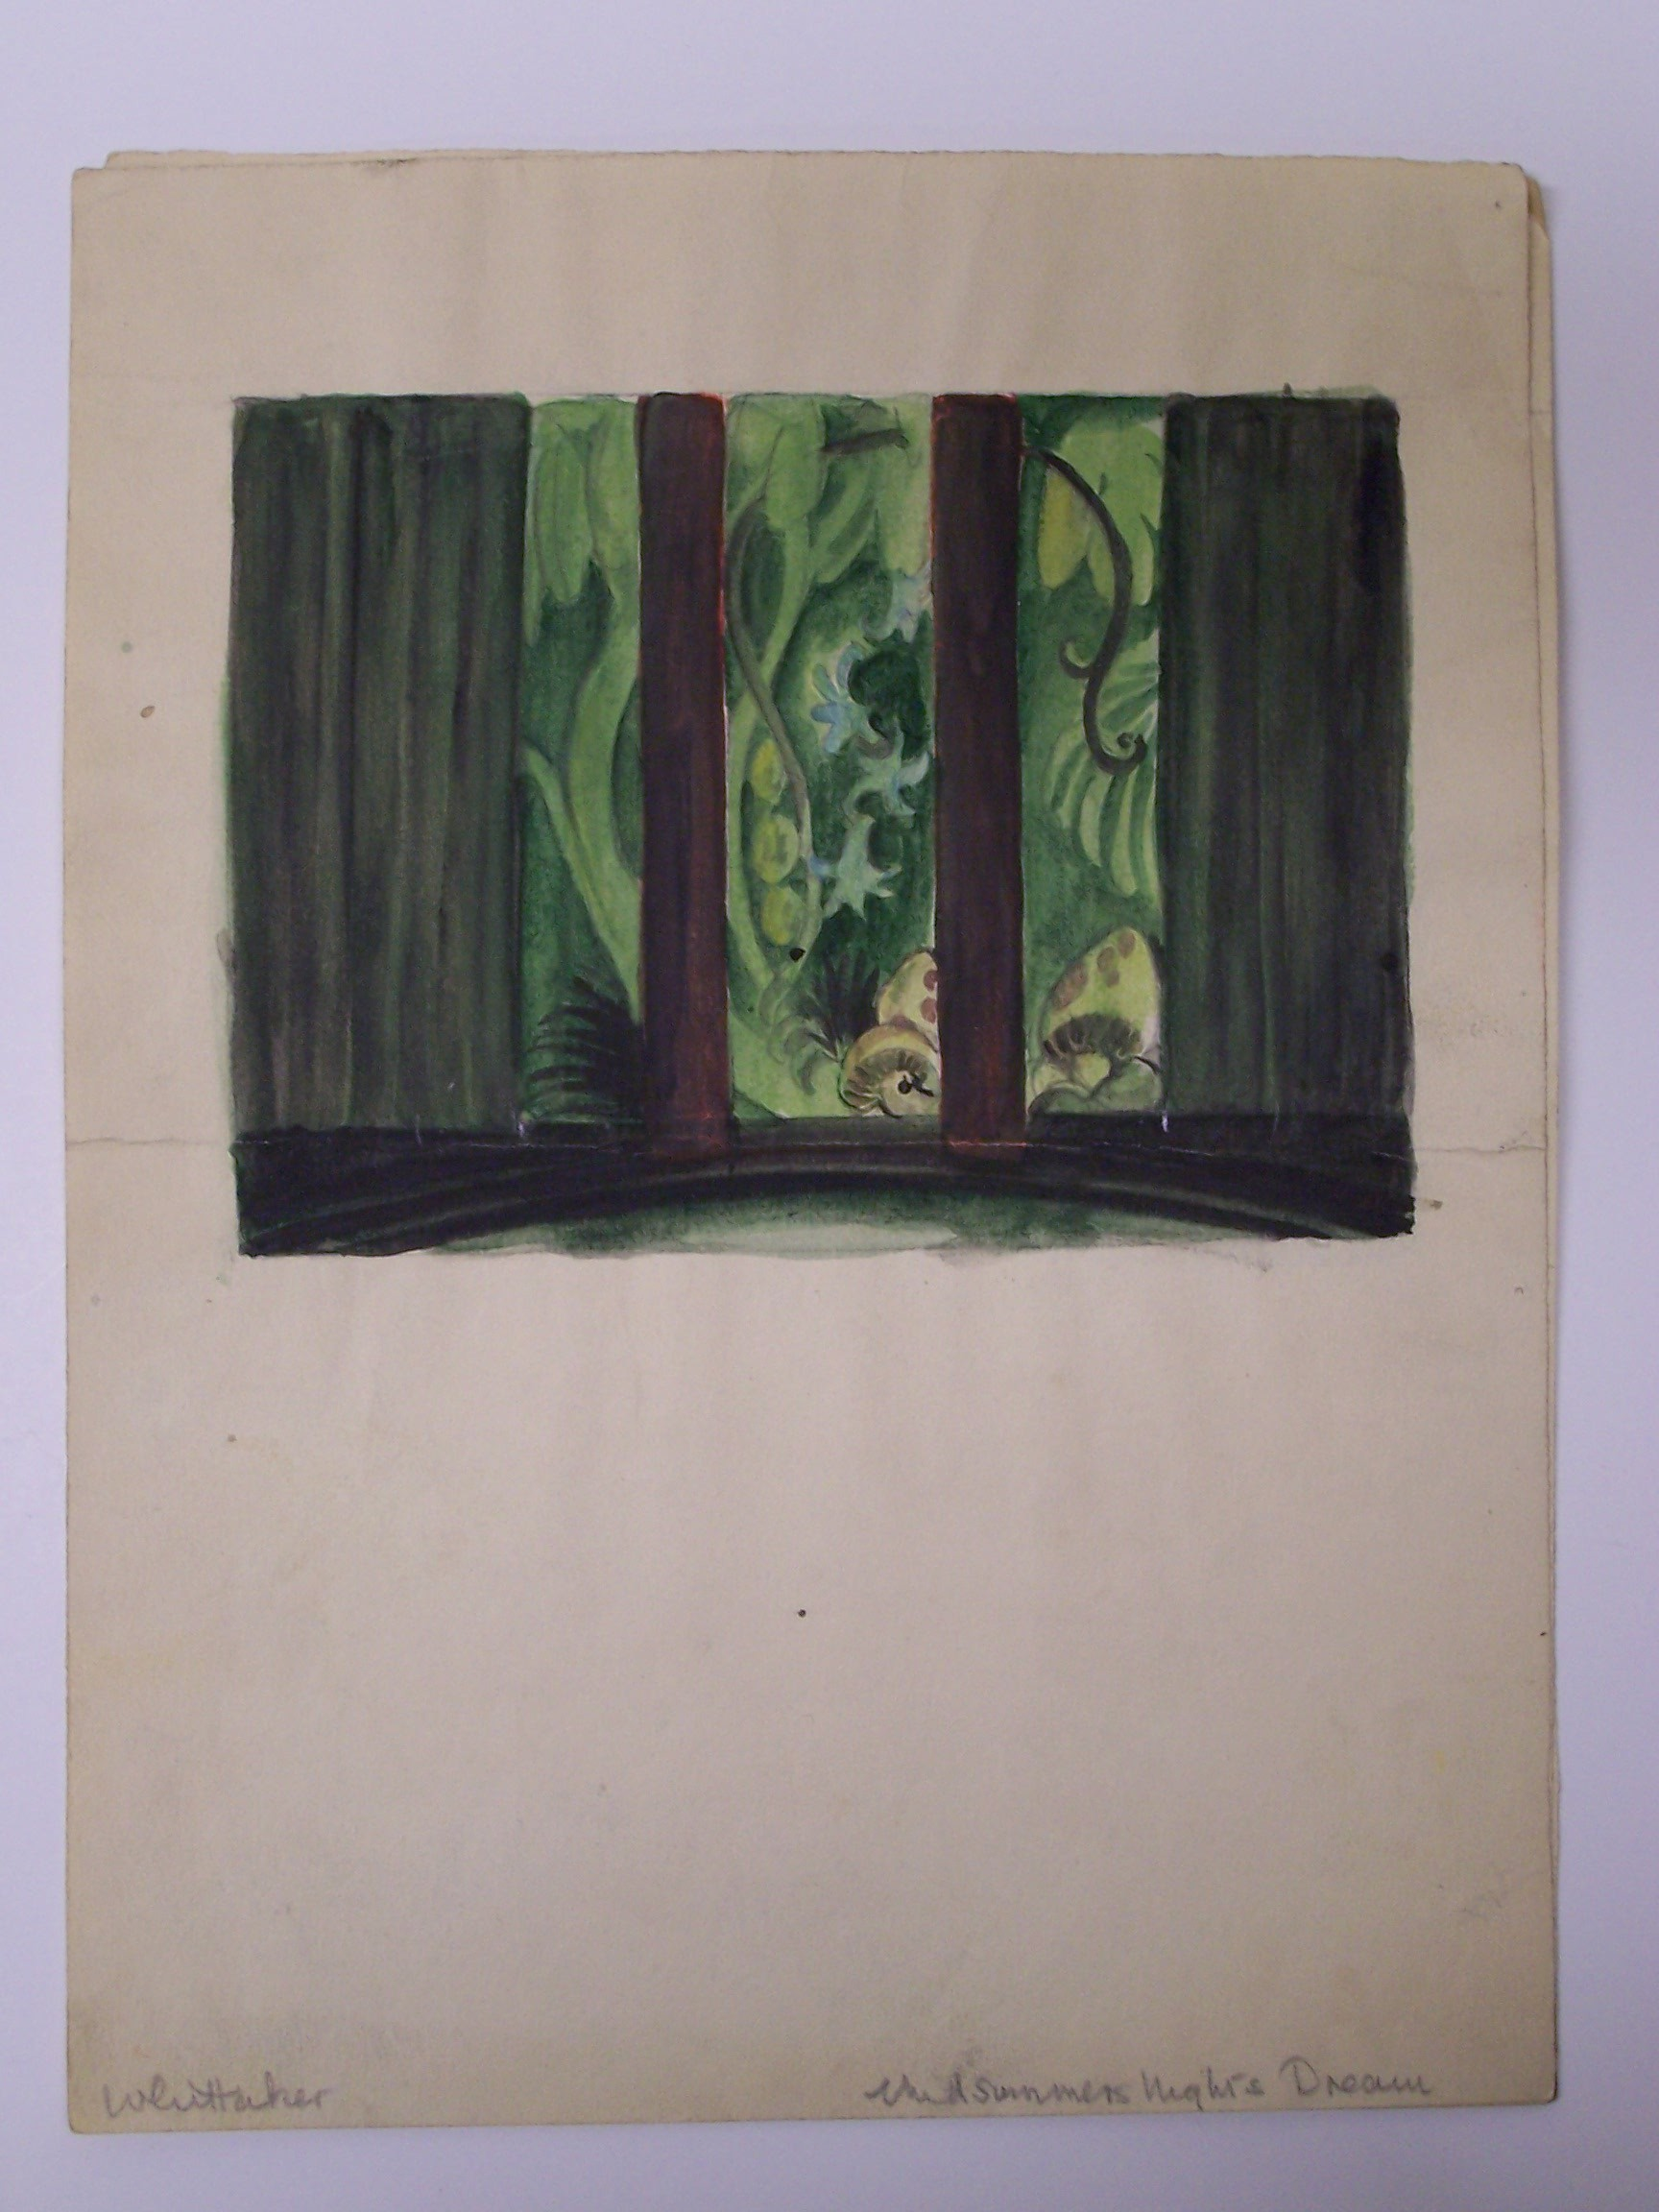 Whittaker set design for a Midsummer Night's Dream